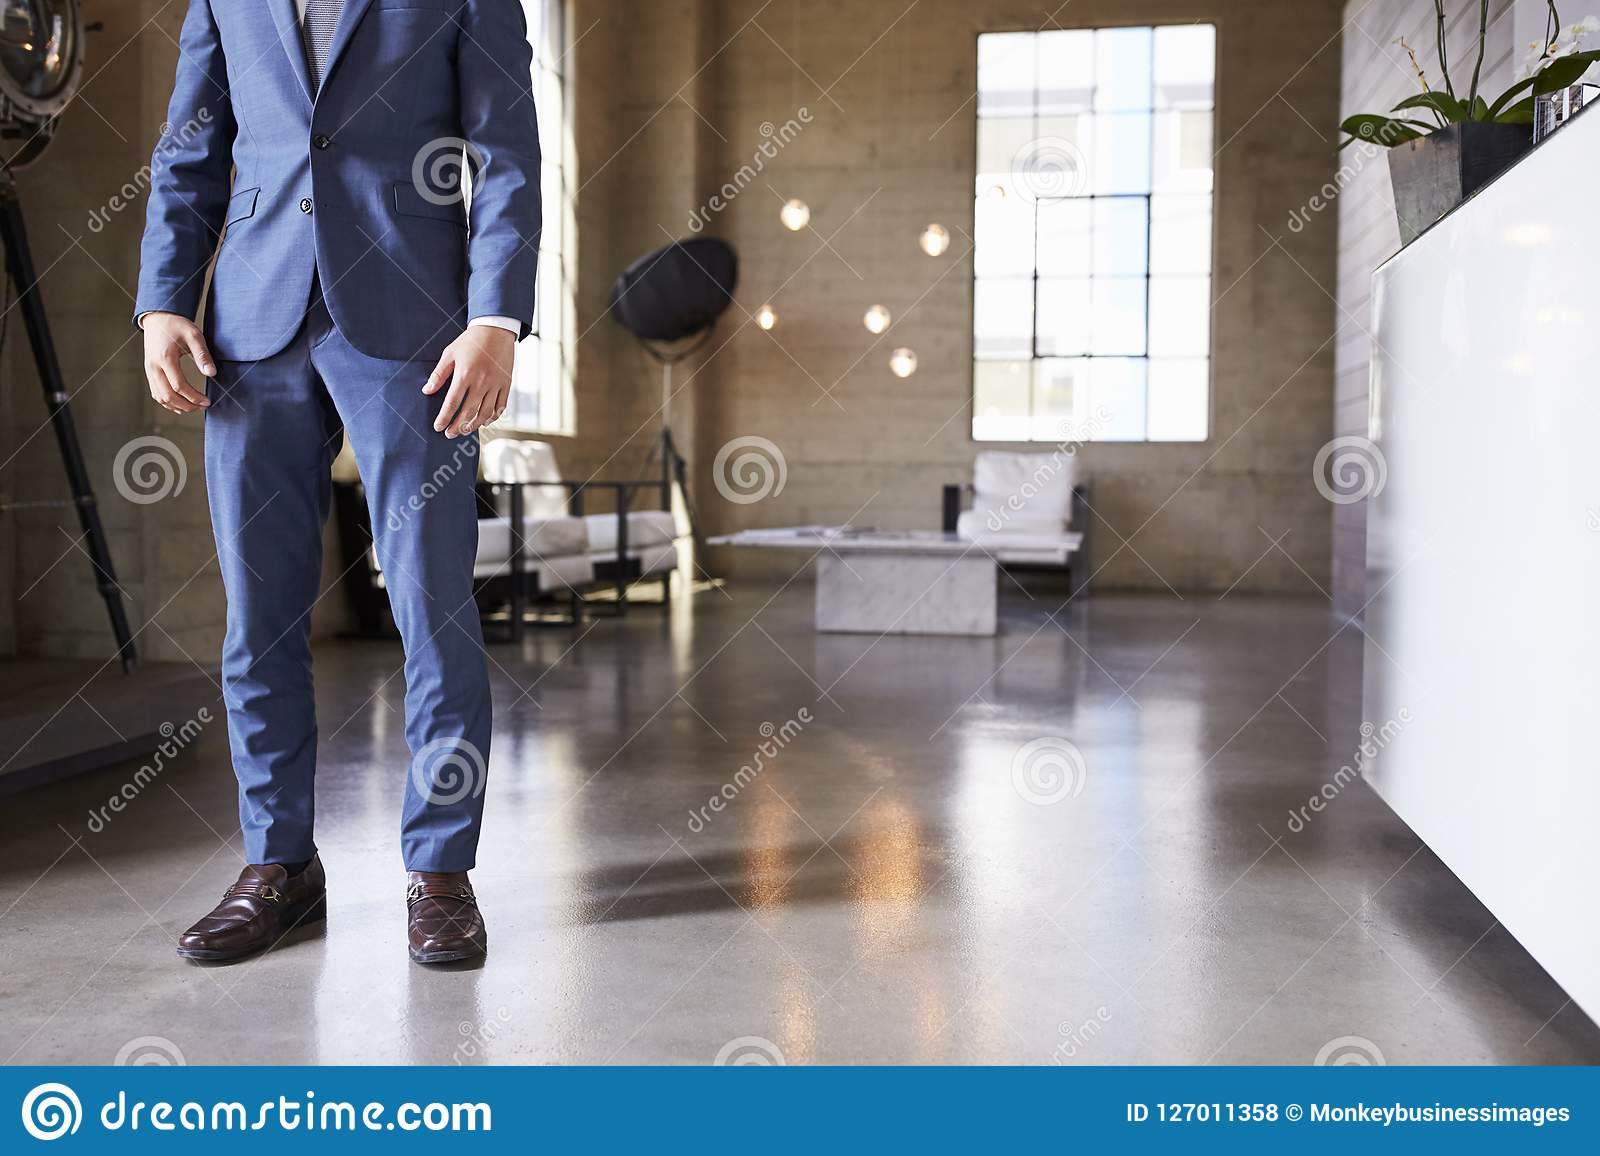 Low section of man in suit standing in modern furnished room